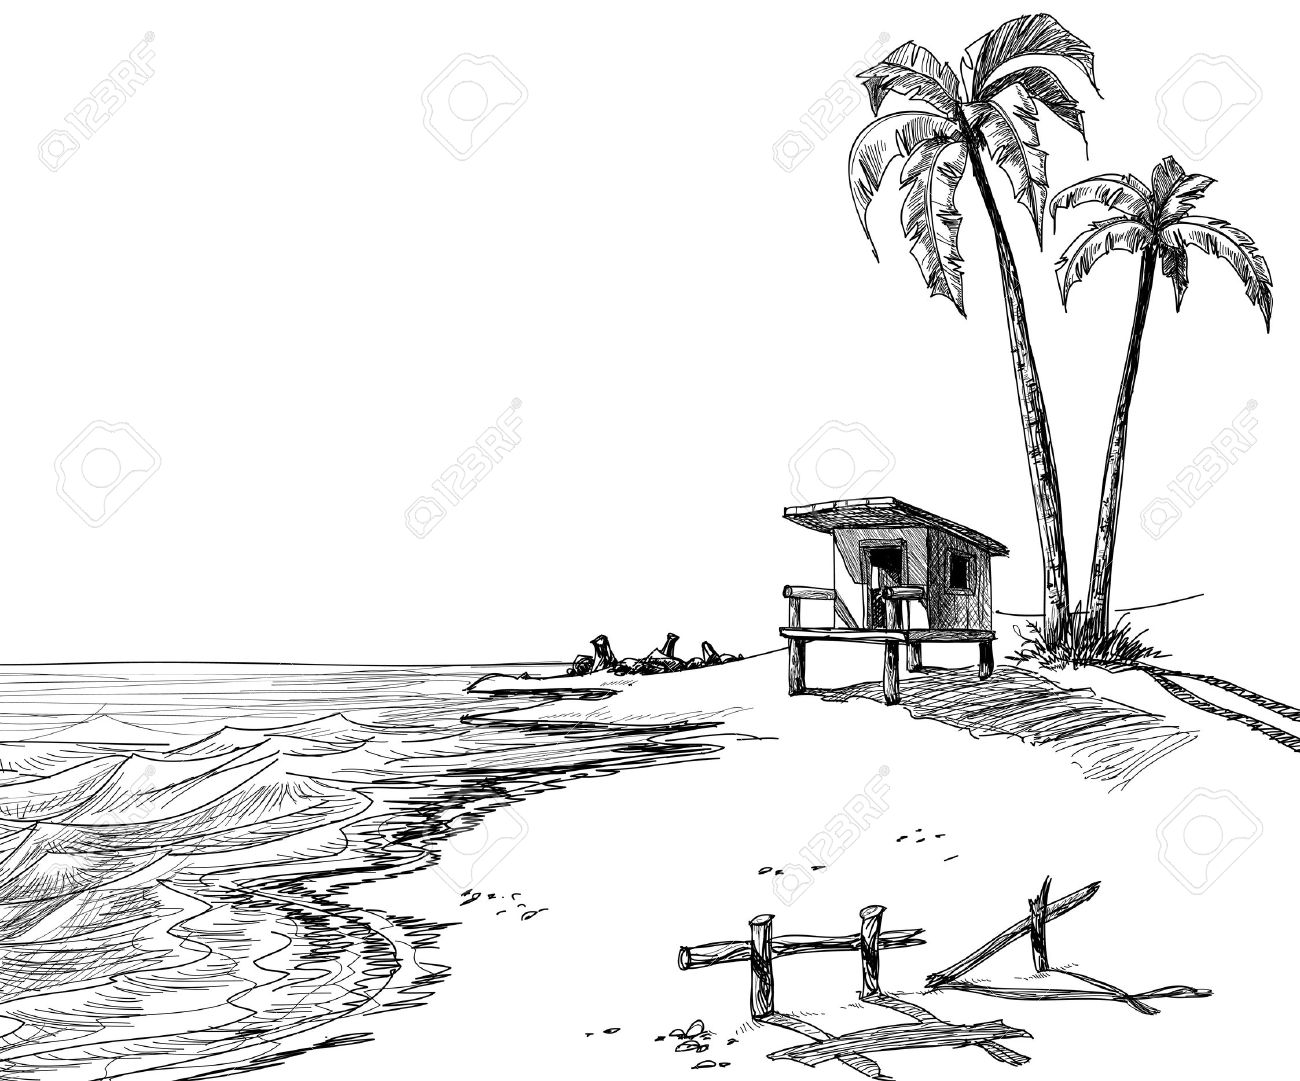 Lifeguard chair cartoon - Lifeguard Summer Beach Sketch With Palm Trees And Lifeguard Stand